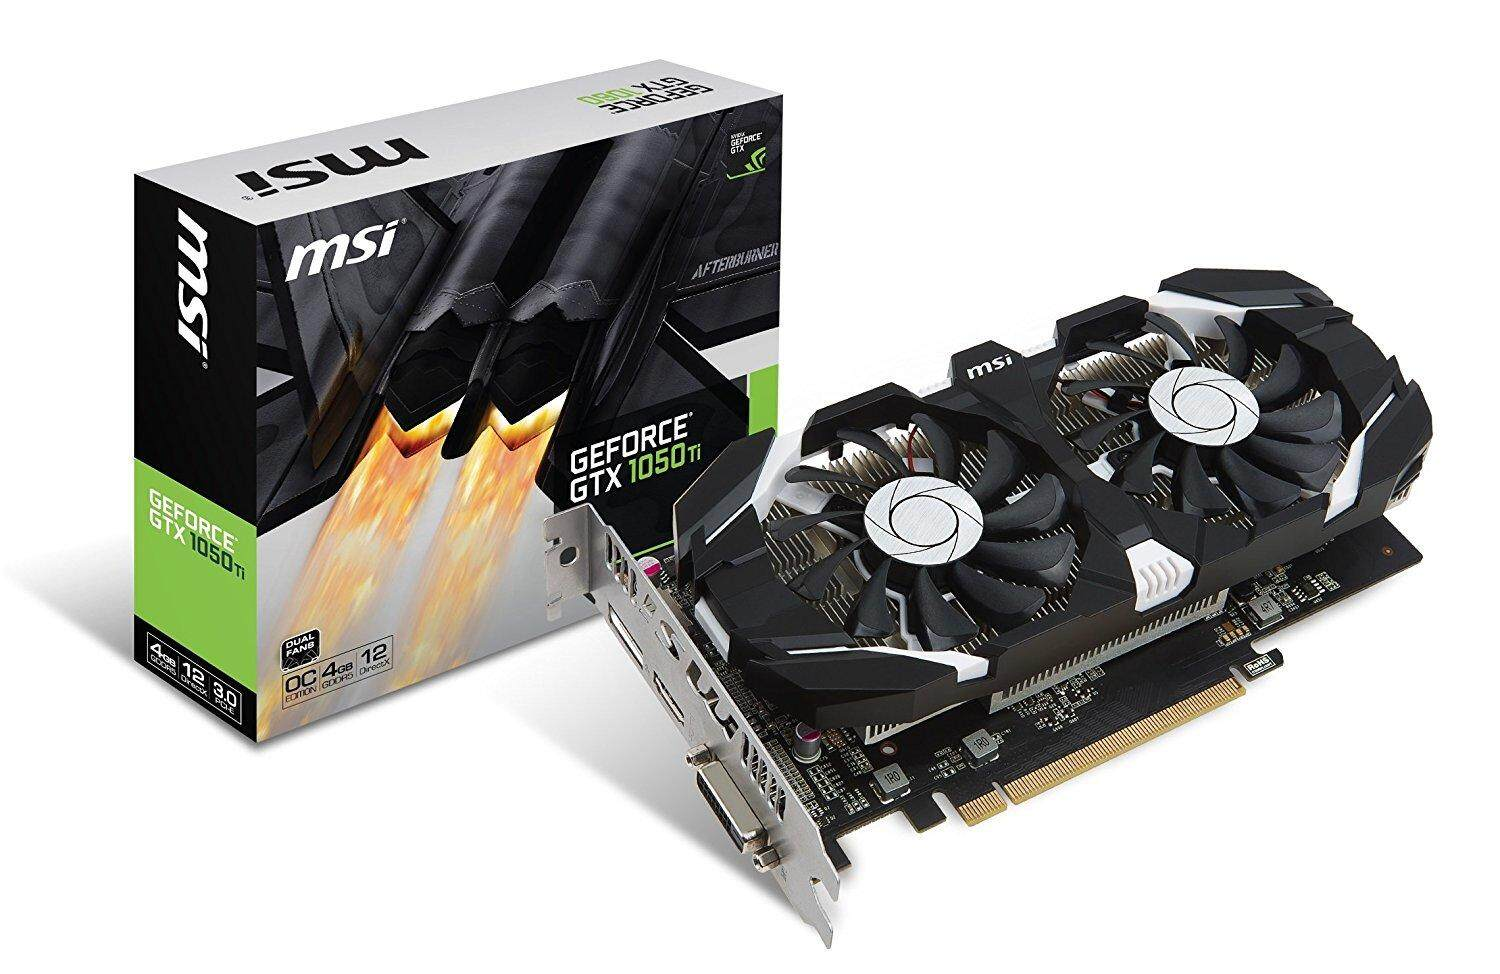 Msi Computer Components Graphic Cards Price In Malaysia Best Geforce Gtx 750 Ti 2gb Twin Frozr Gaming Nvidia Gtx1050ti 4gt Ocv1 Fan Ddr5 Graphics Card